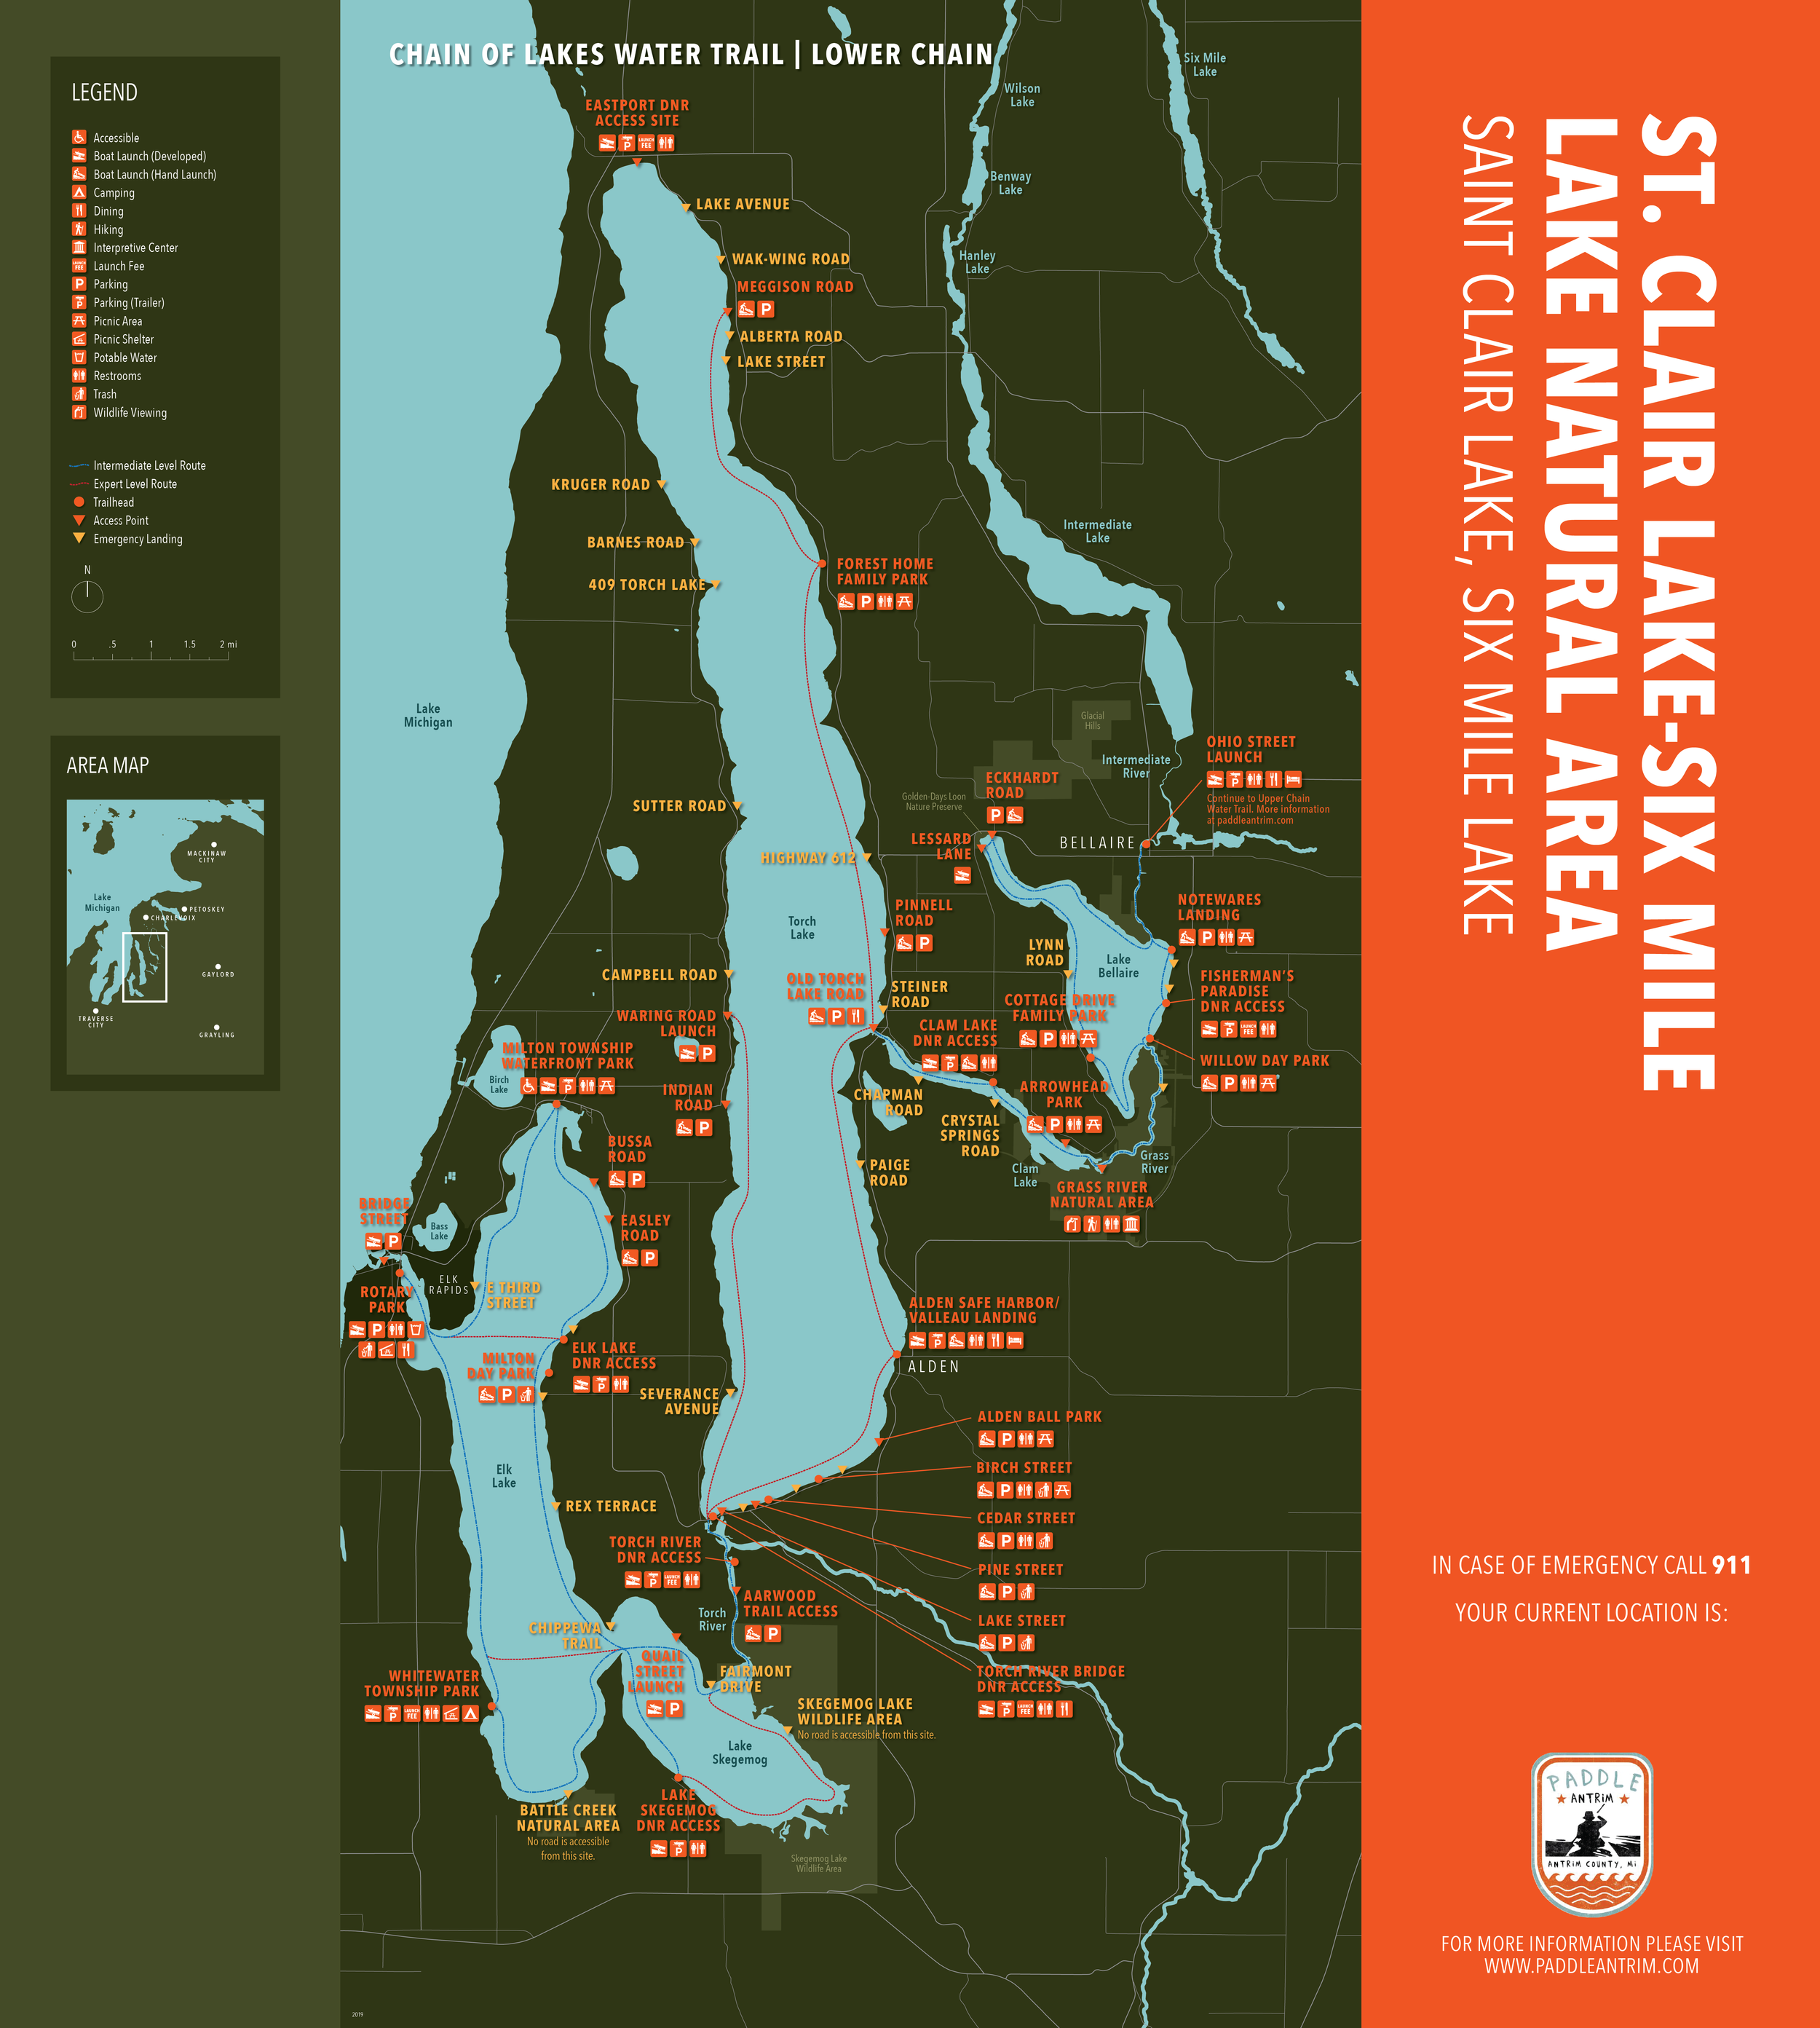 PaddleAntrim_WaterTrail_LowerChain_KioskMap-01.png